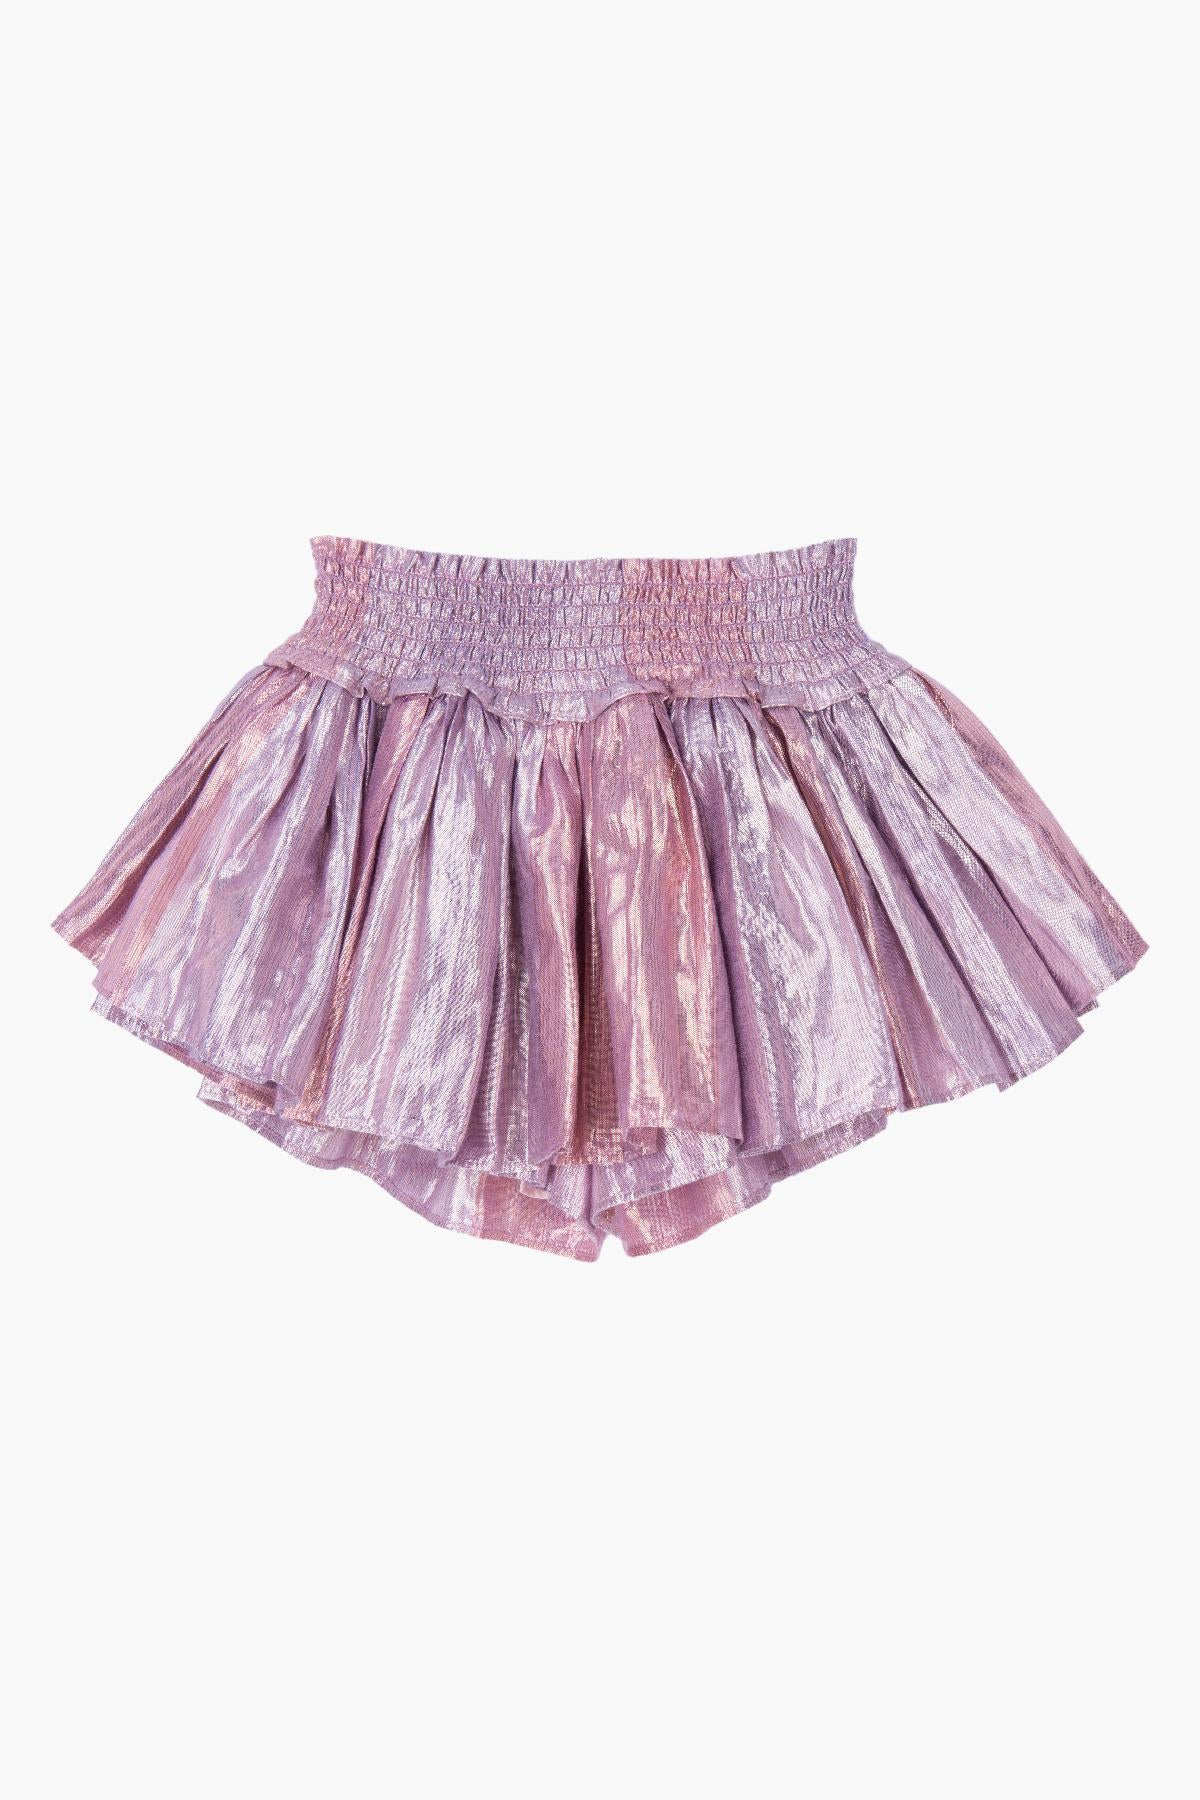 Velveteen Eloise Girls Skort - Purple